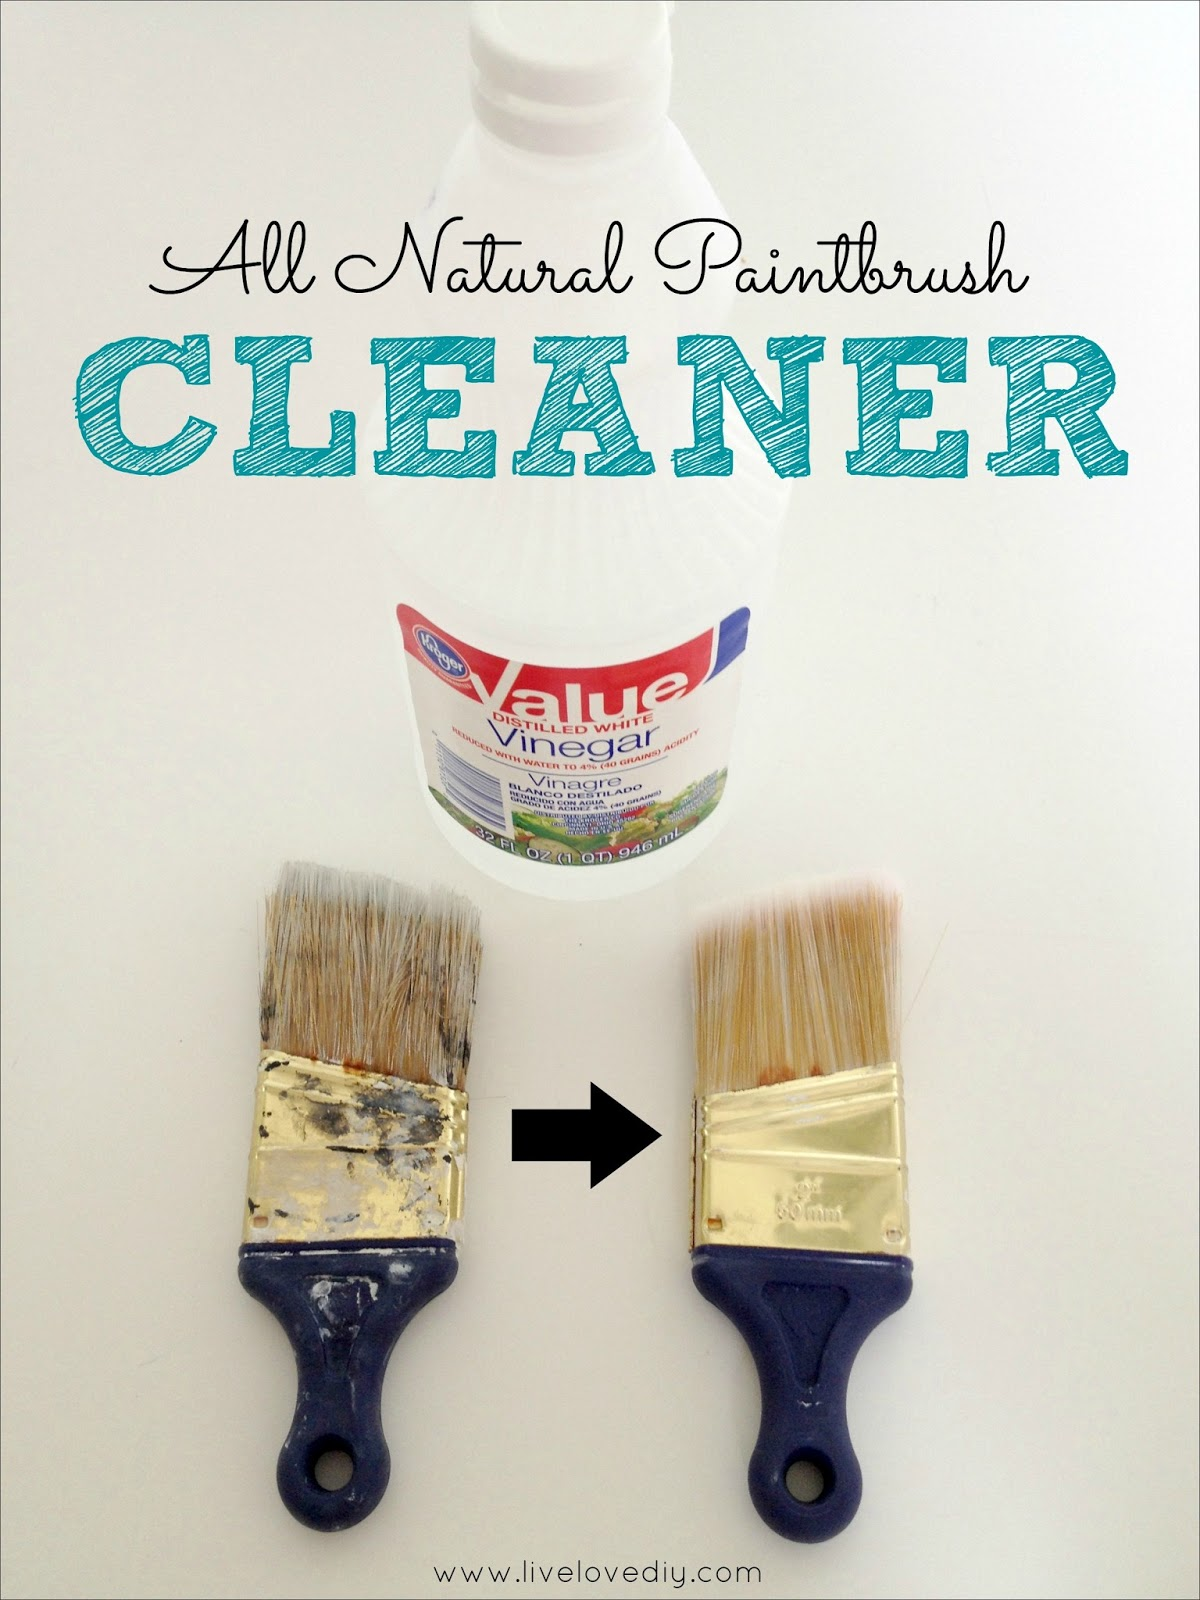 How to clean paintbrushes - 10 Paint Secrets Tips Tricks You Never Knew About Paint